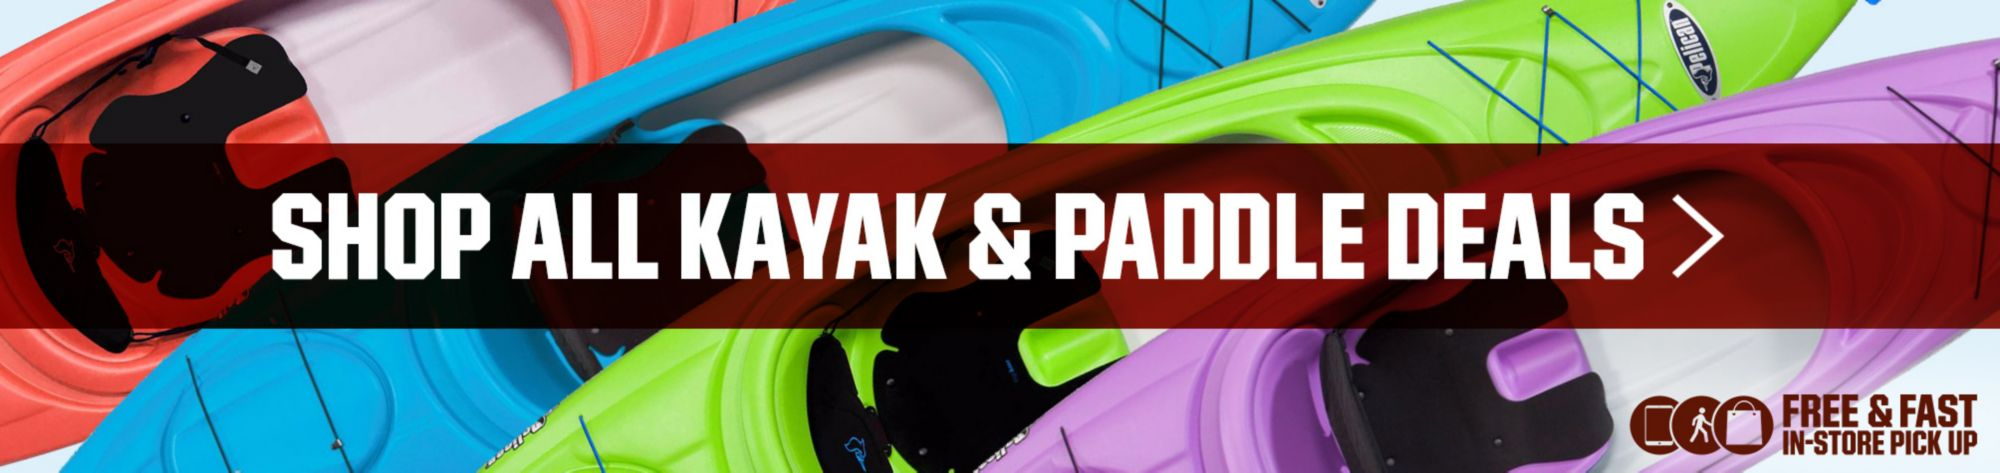 Kayak and Paddle Deals